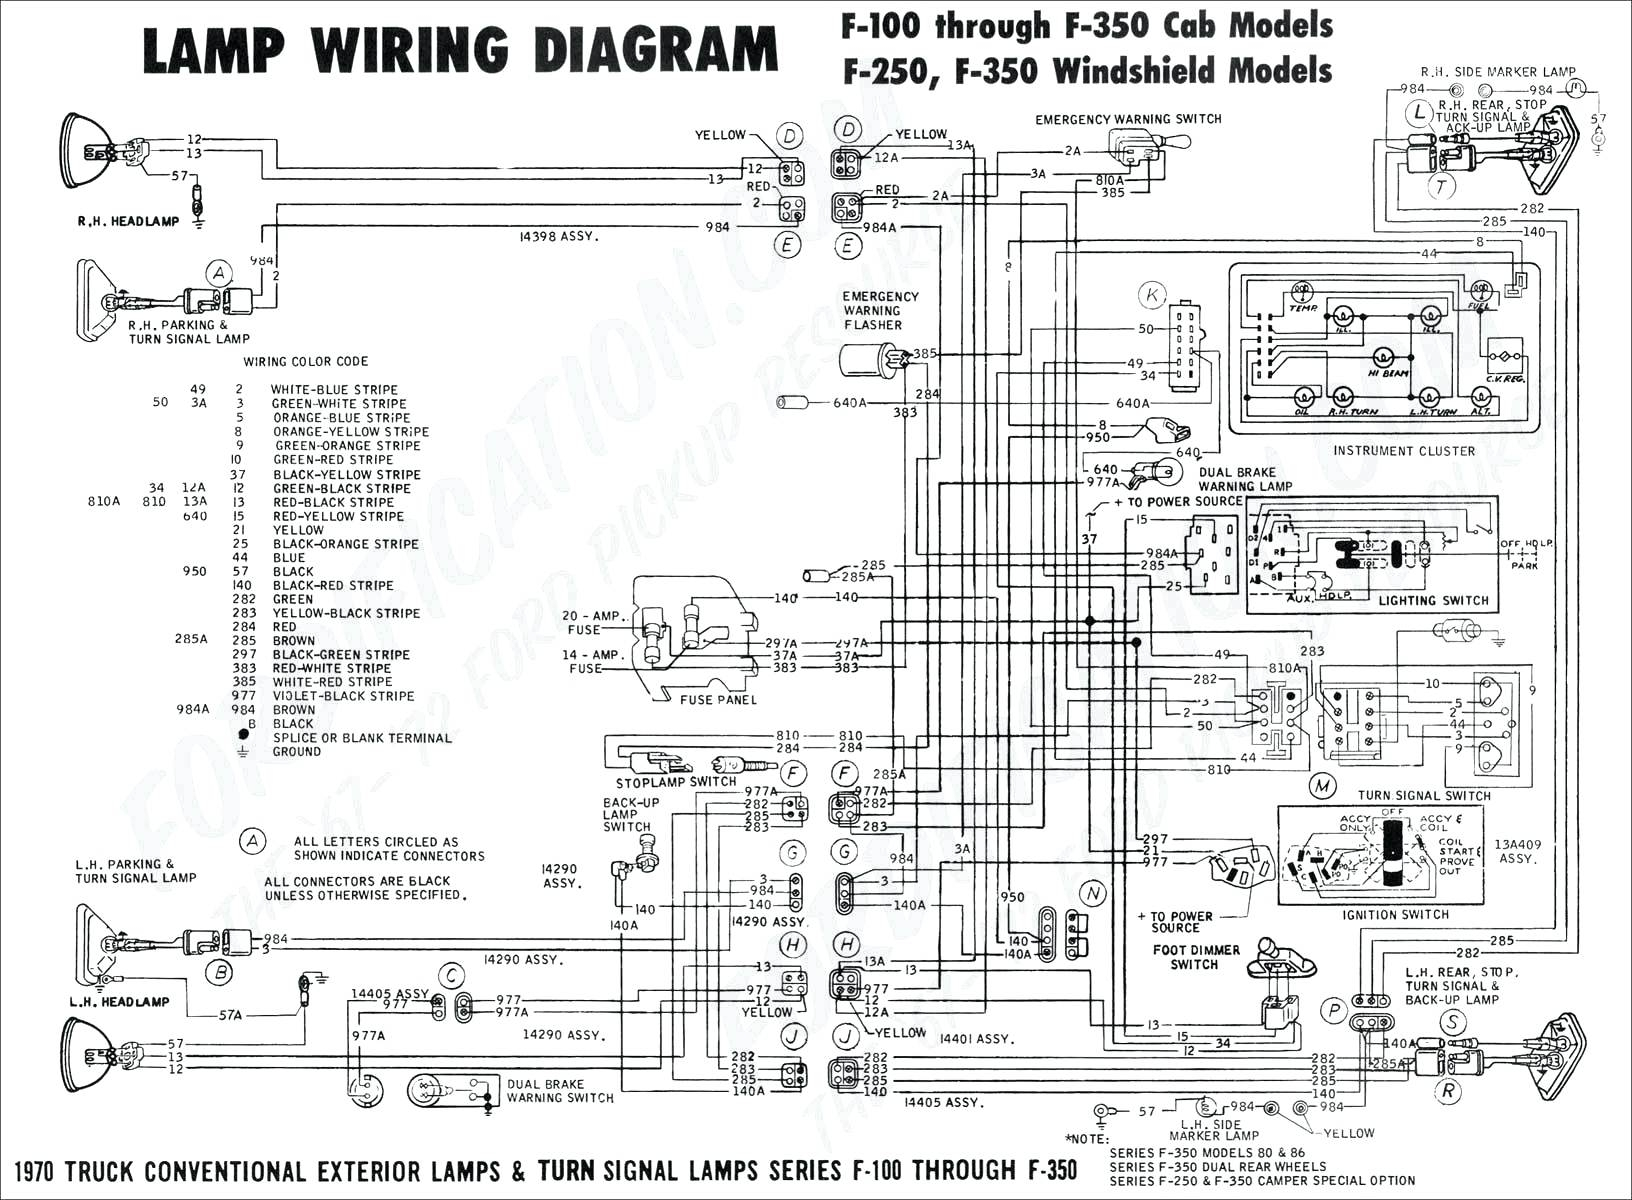 2014 FORD E 150 WIRING DIAGRAMS - Auto Electrical Wiring Diagram Harley Davidson Turn Signal Wiring Schematic on